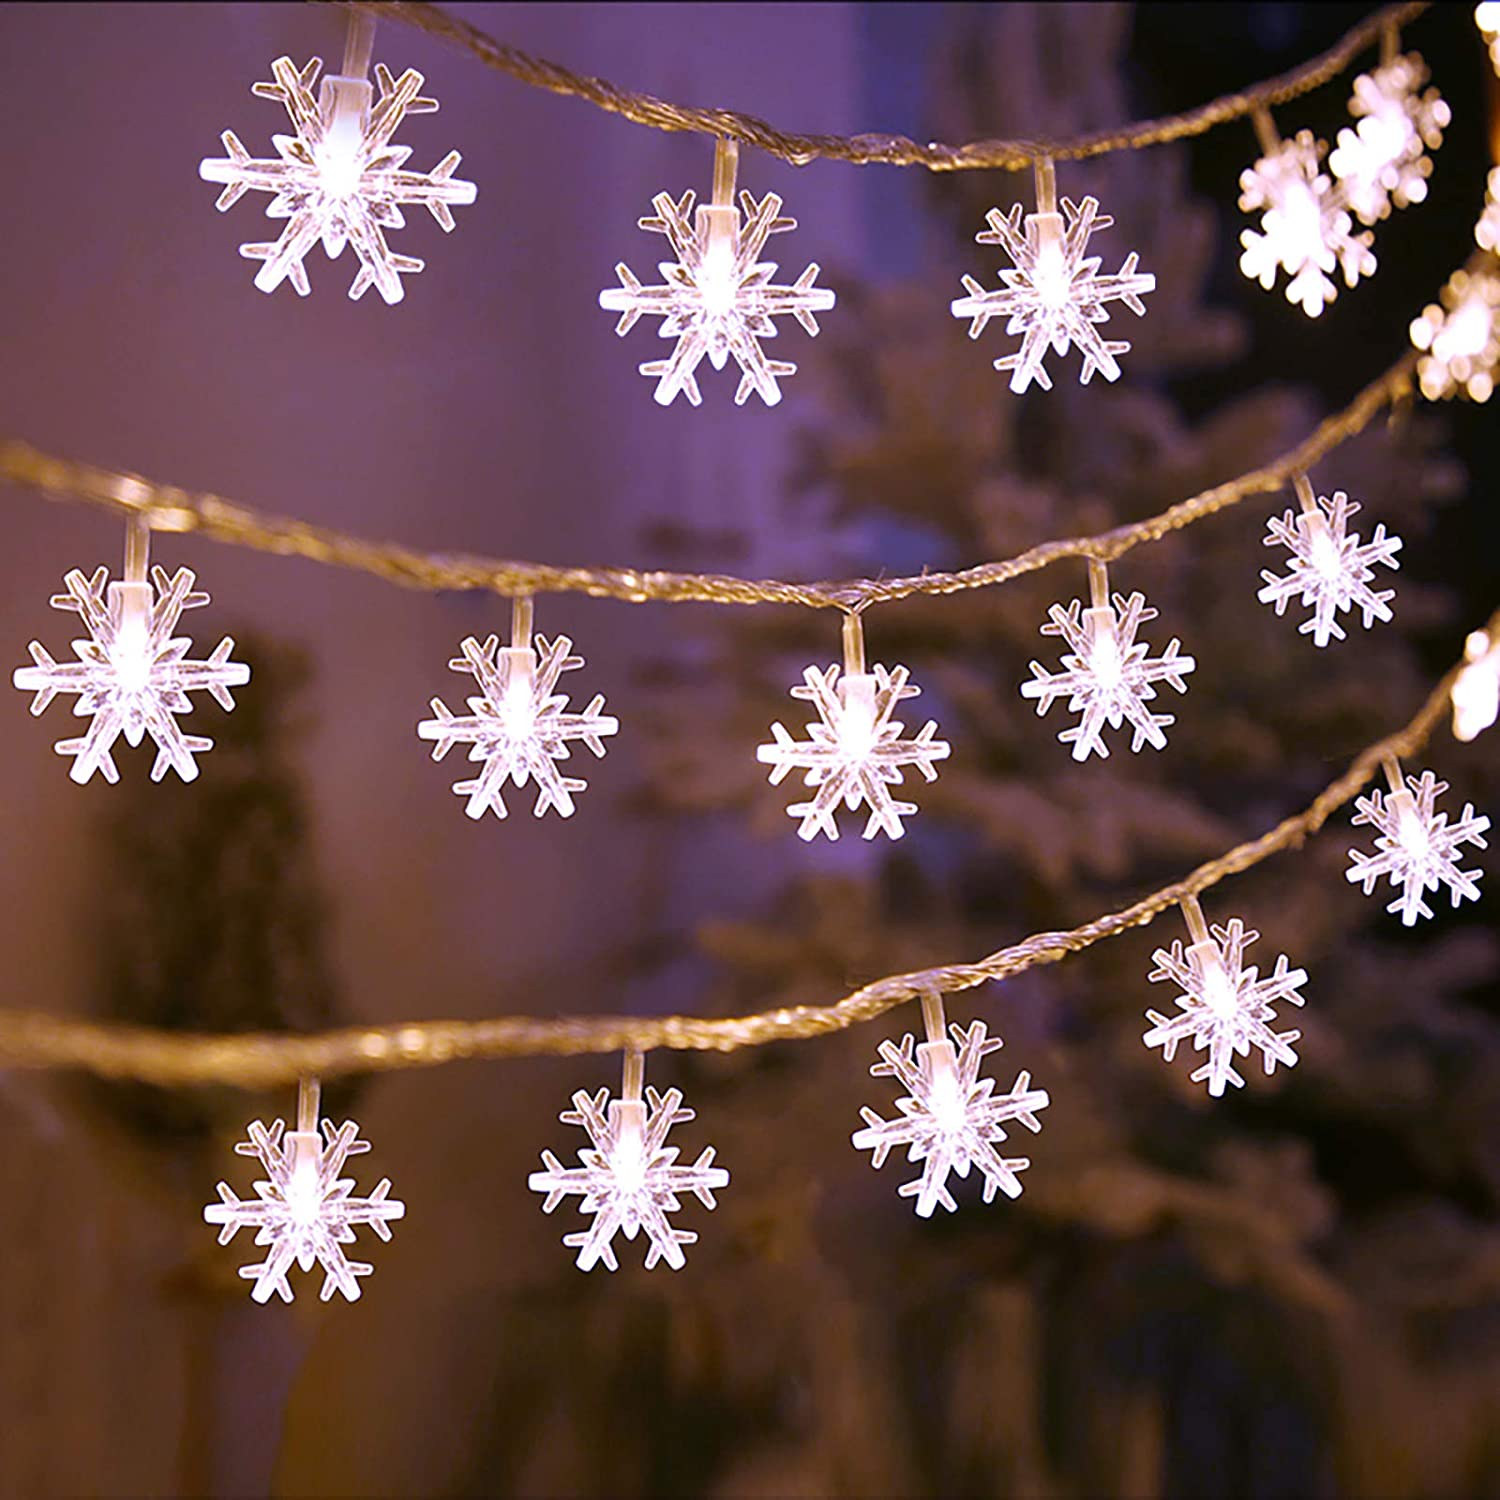 8ft LED Battery Operated Christmas String Lights Party Supplies Indoor Outdoor